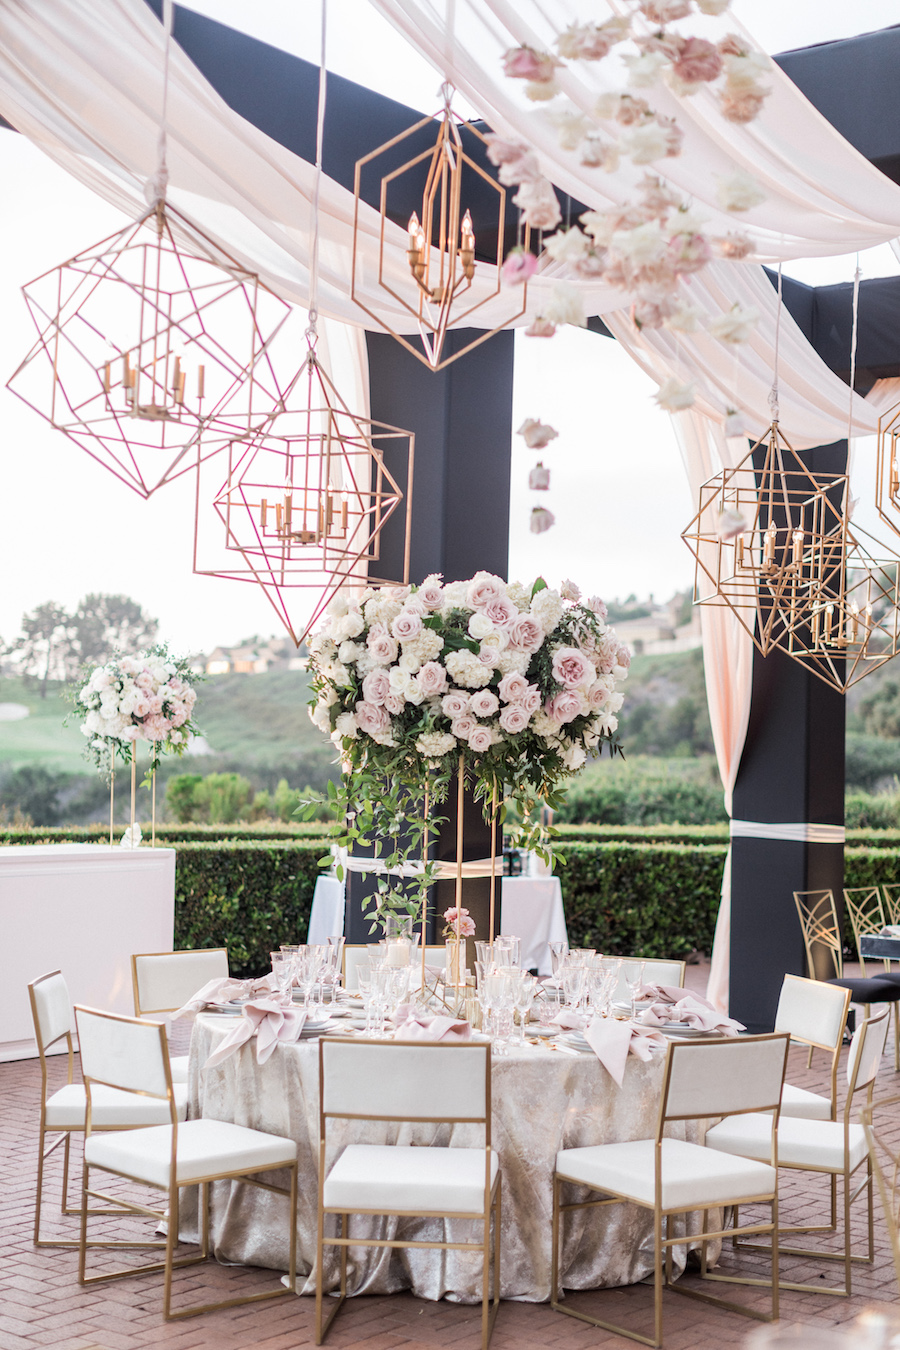 Coastal Wedding at The Resort at Pelican Hill1